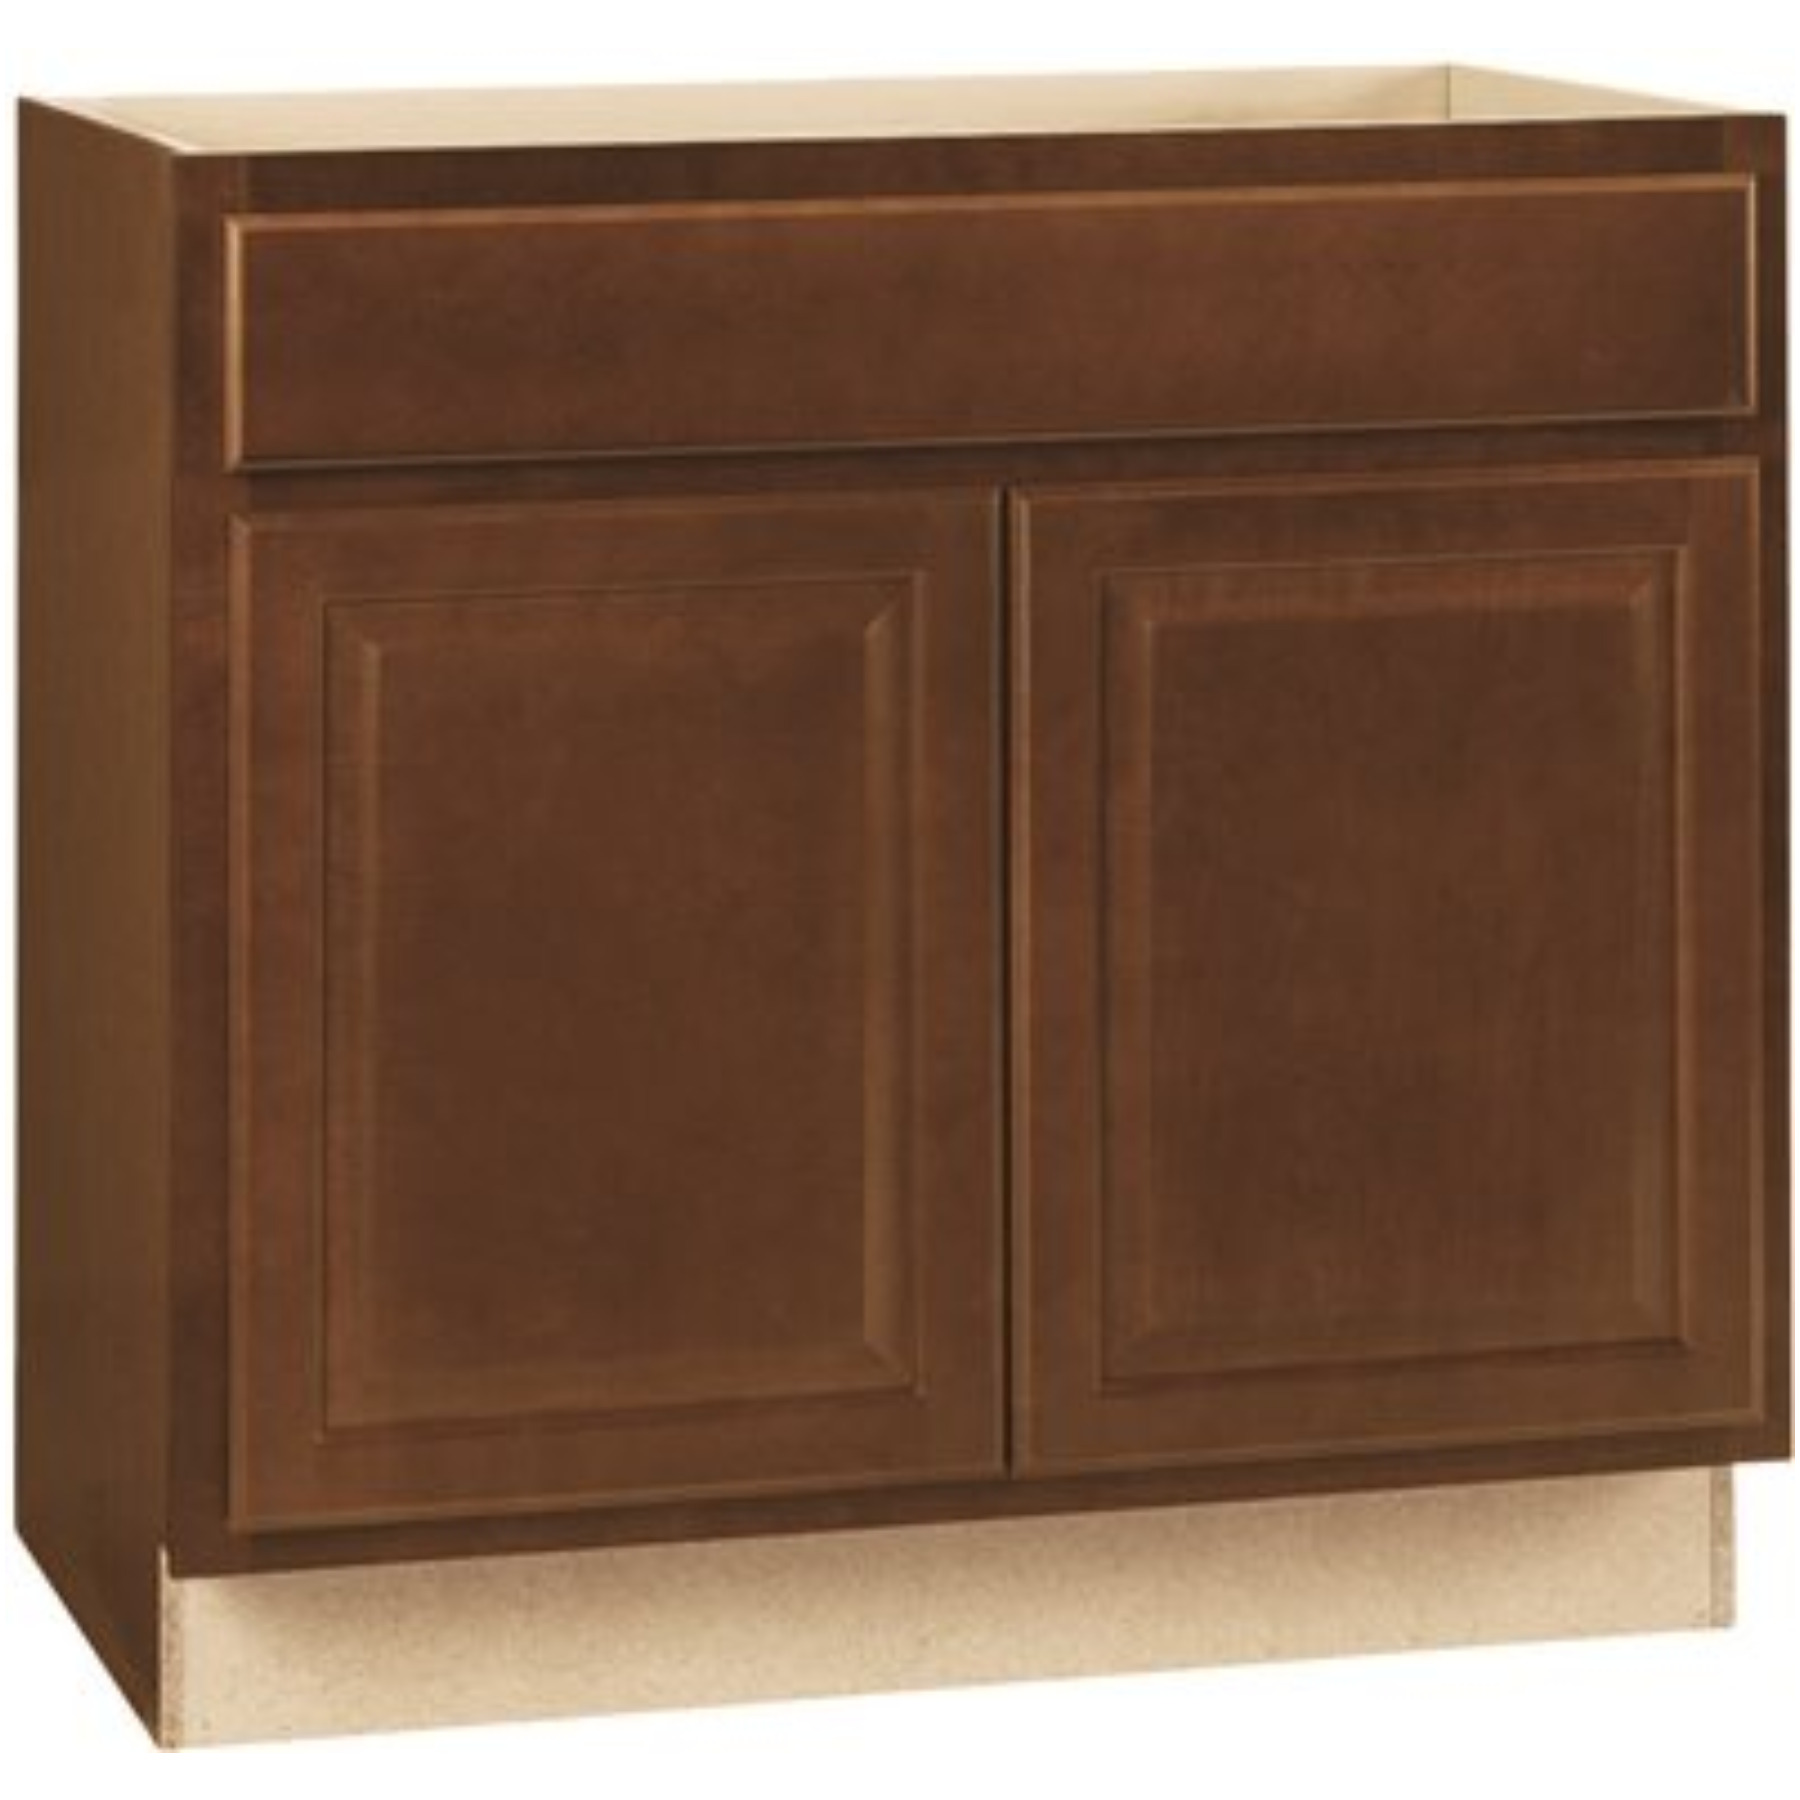 RSI HOME PRODUCTS HAMILTON SINK BASE CABINET, FULLY ASSEMBLED, RAISED PANEL, CAFE, 36X34-1/2X24 IN.